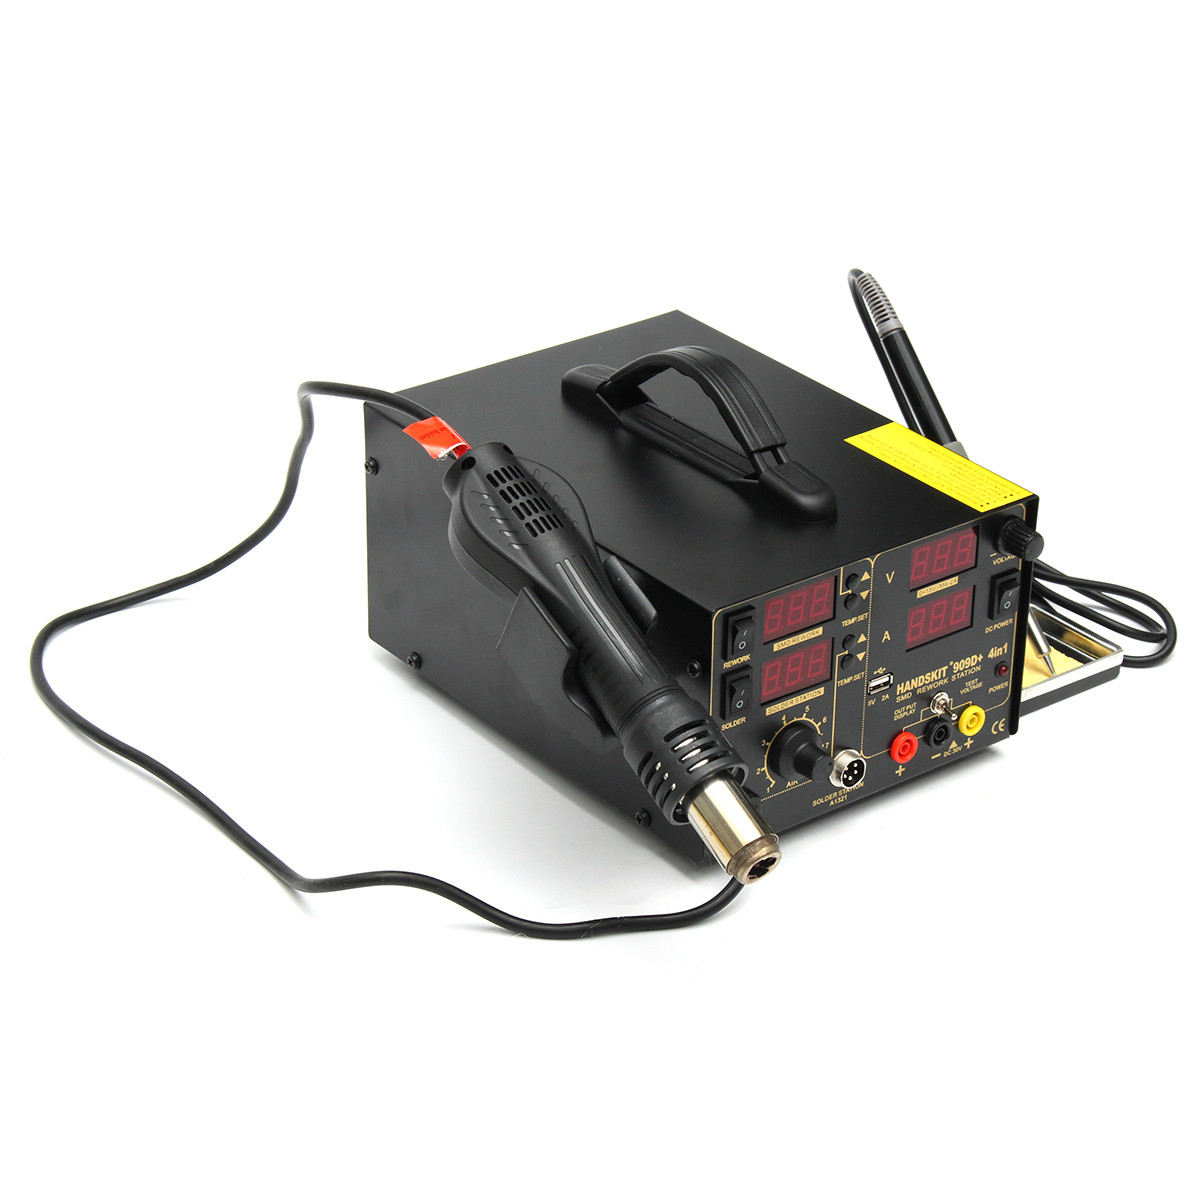 110V 800W 4 In 1 909D+ Rework Soldering Station Power Supply Hot Heat Air Gun Soldering Iron Kit